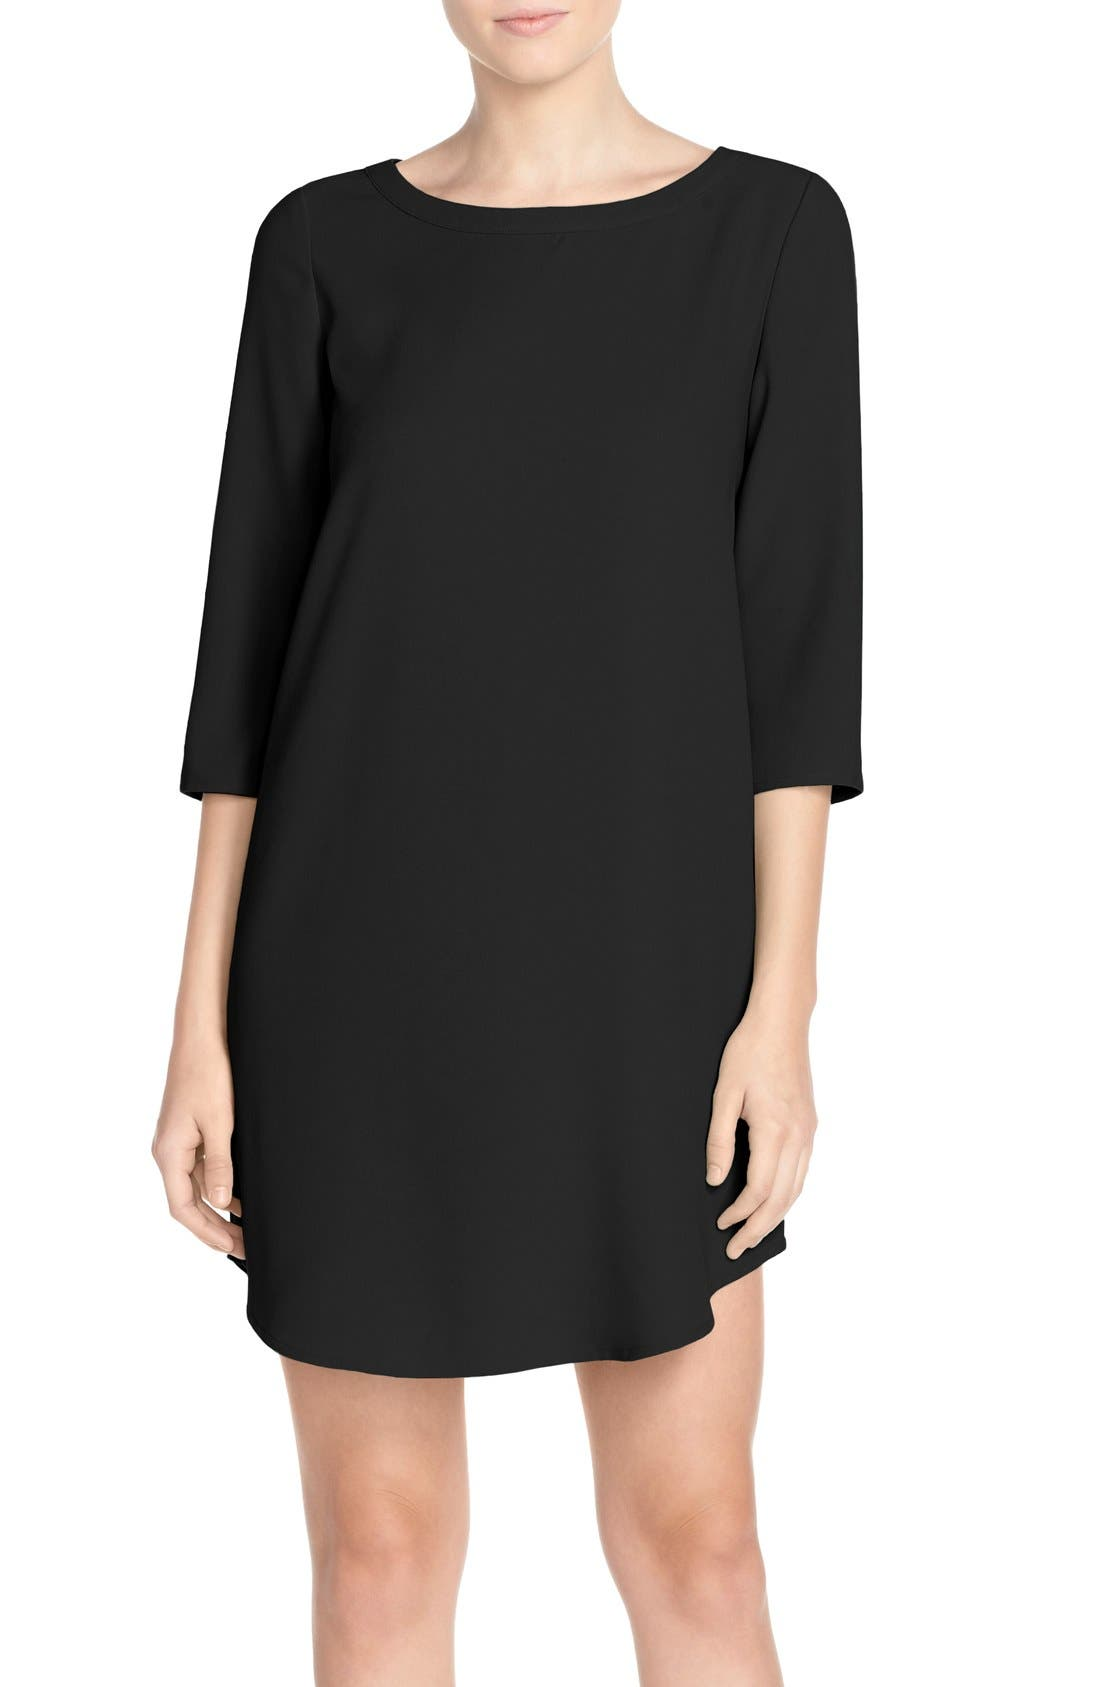 Alternate Image 1 Selected - BB Dakota 'Jazlyn' Crepe Shift Dress